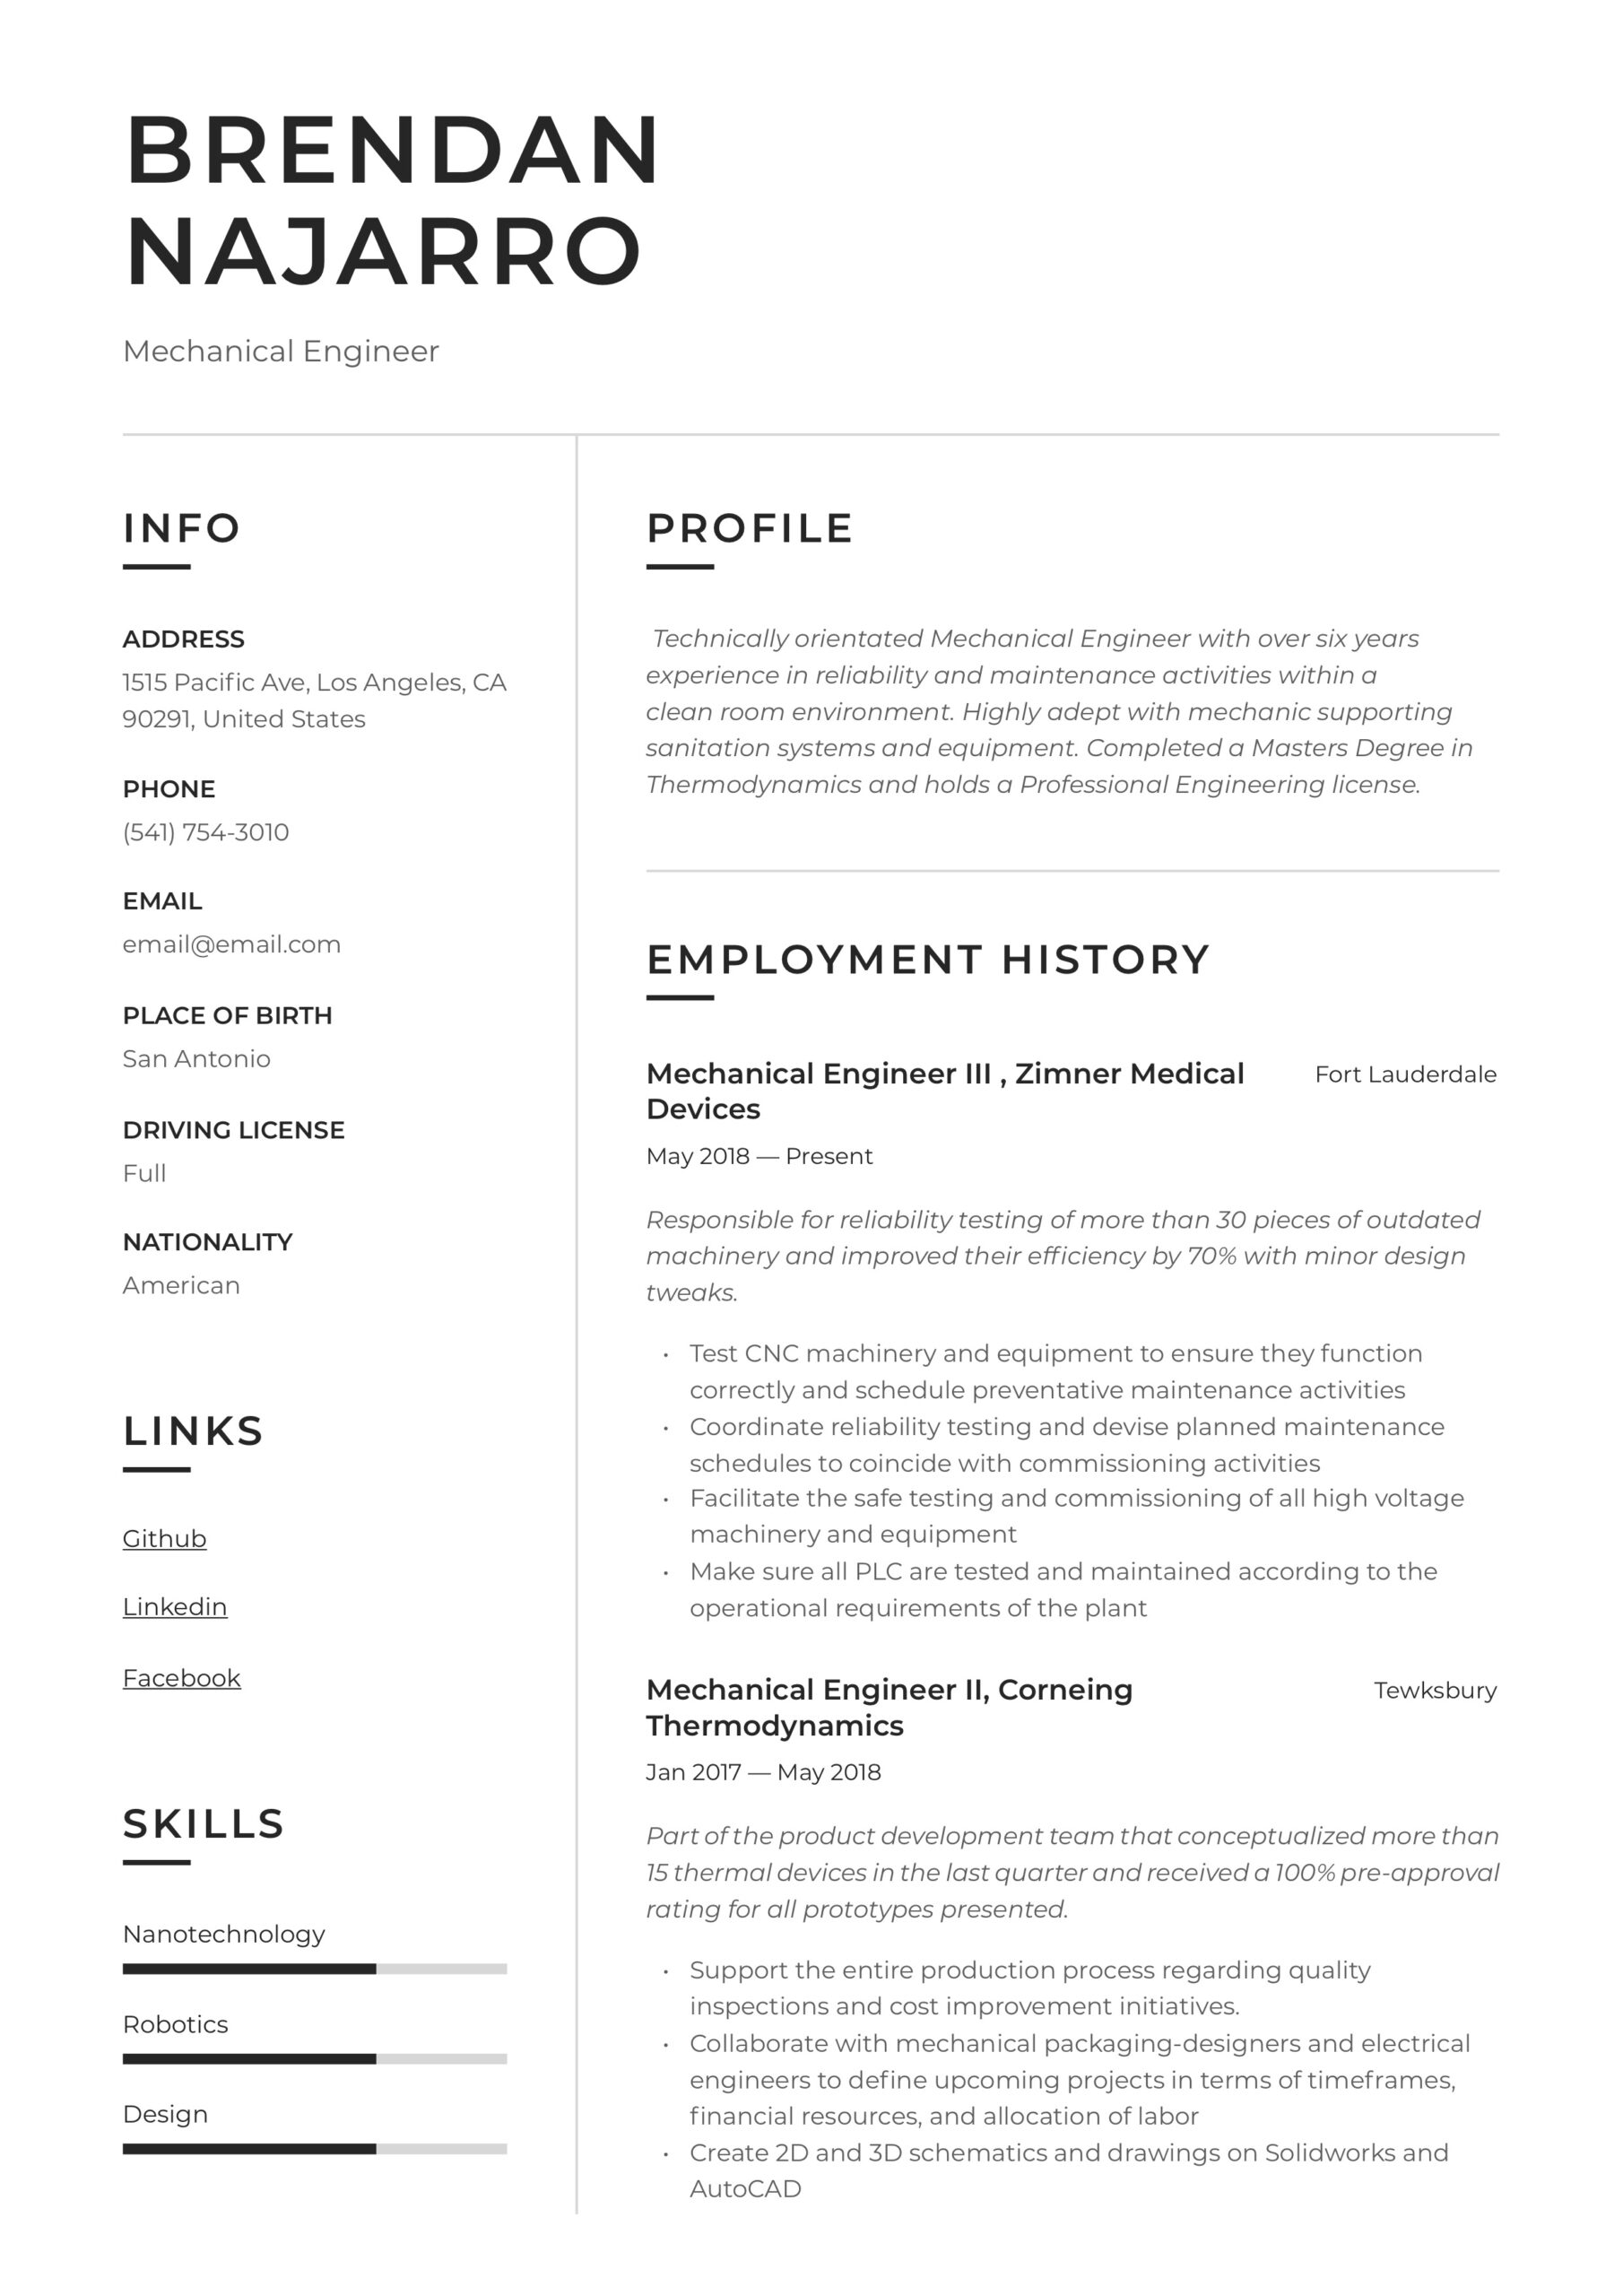 mechanical engineer resume writing guide templates pdf thermal plant awards for examples Resume Thermal Power Plant Engineer Resume